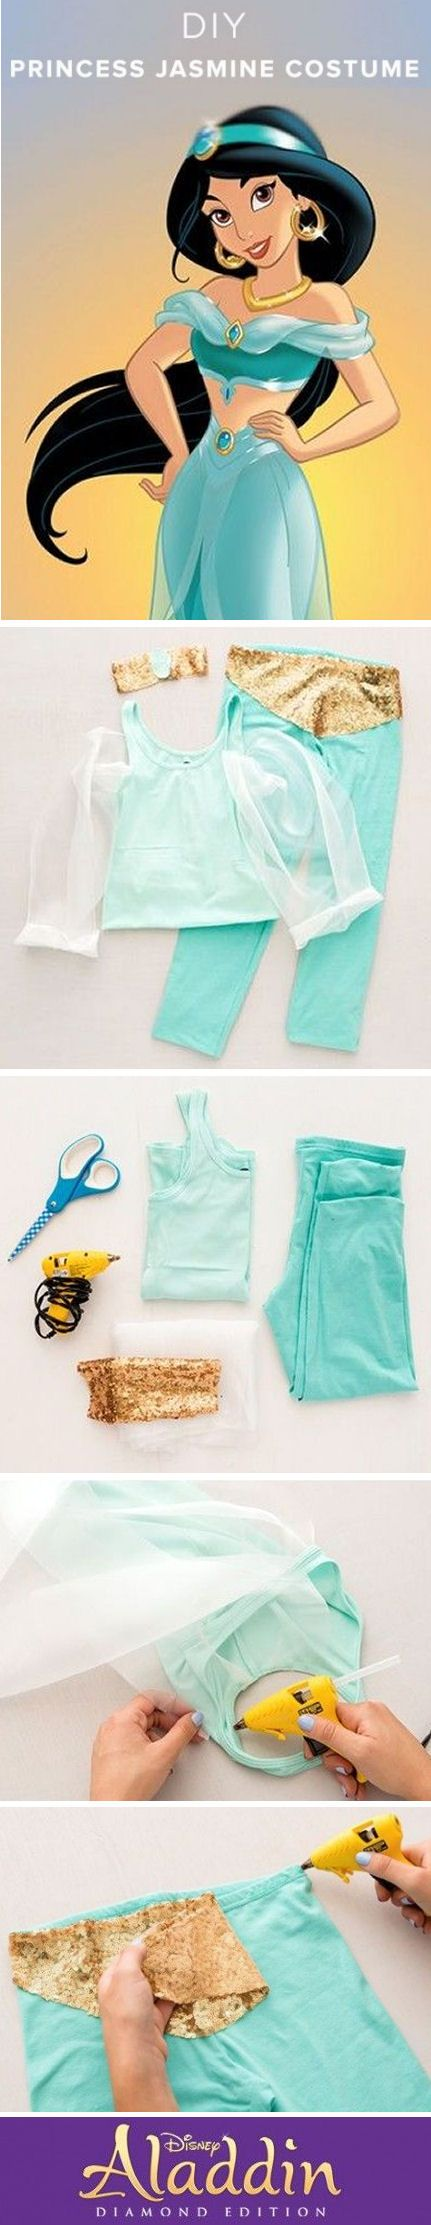 #DIY Princess Jasmine Costume ❤︎ #halloween #aladdin #disney